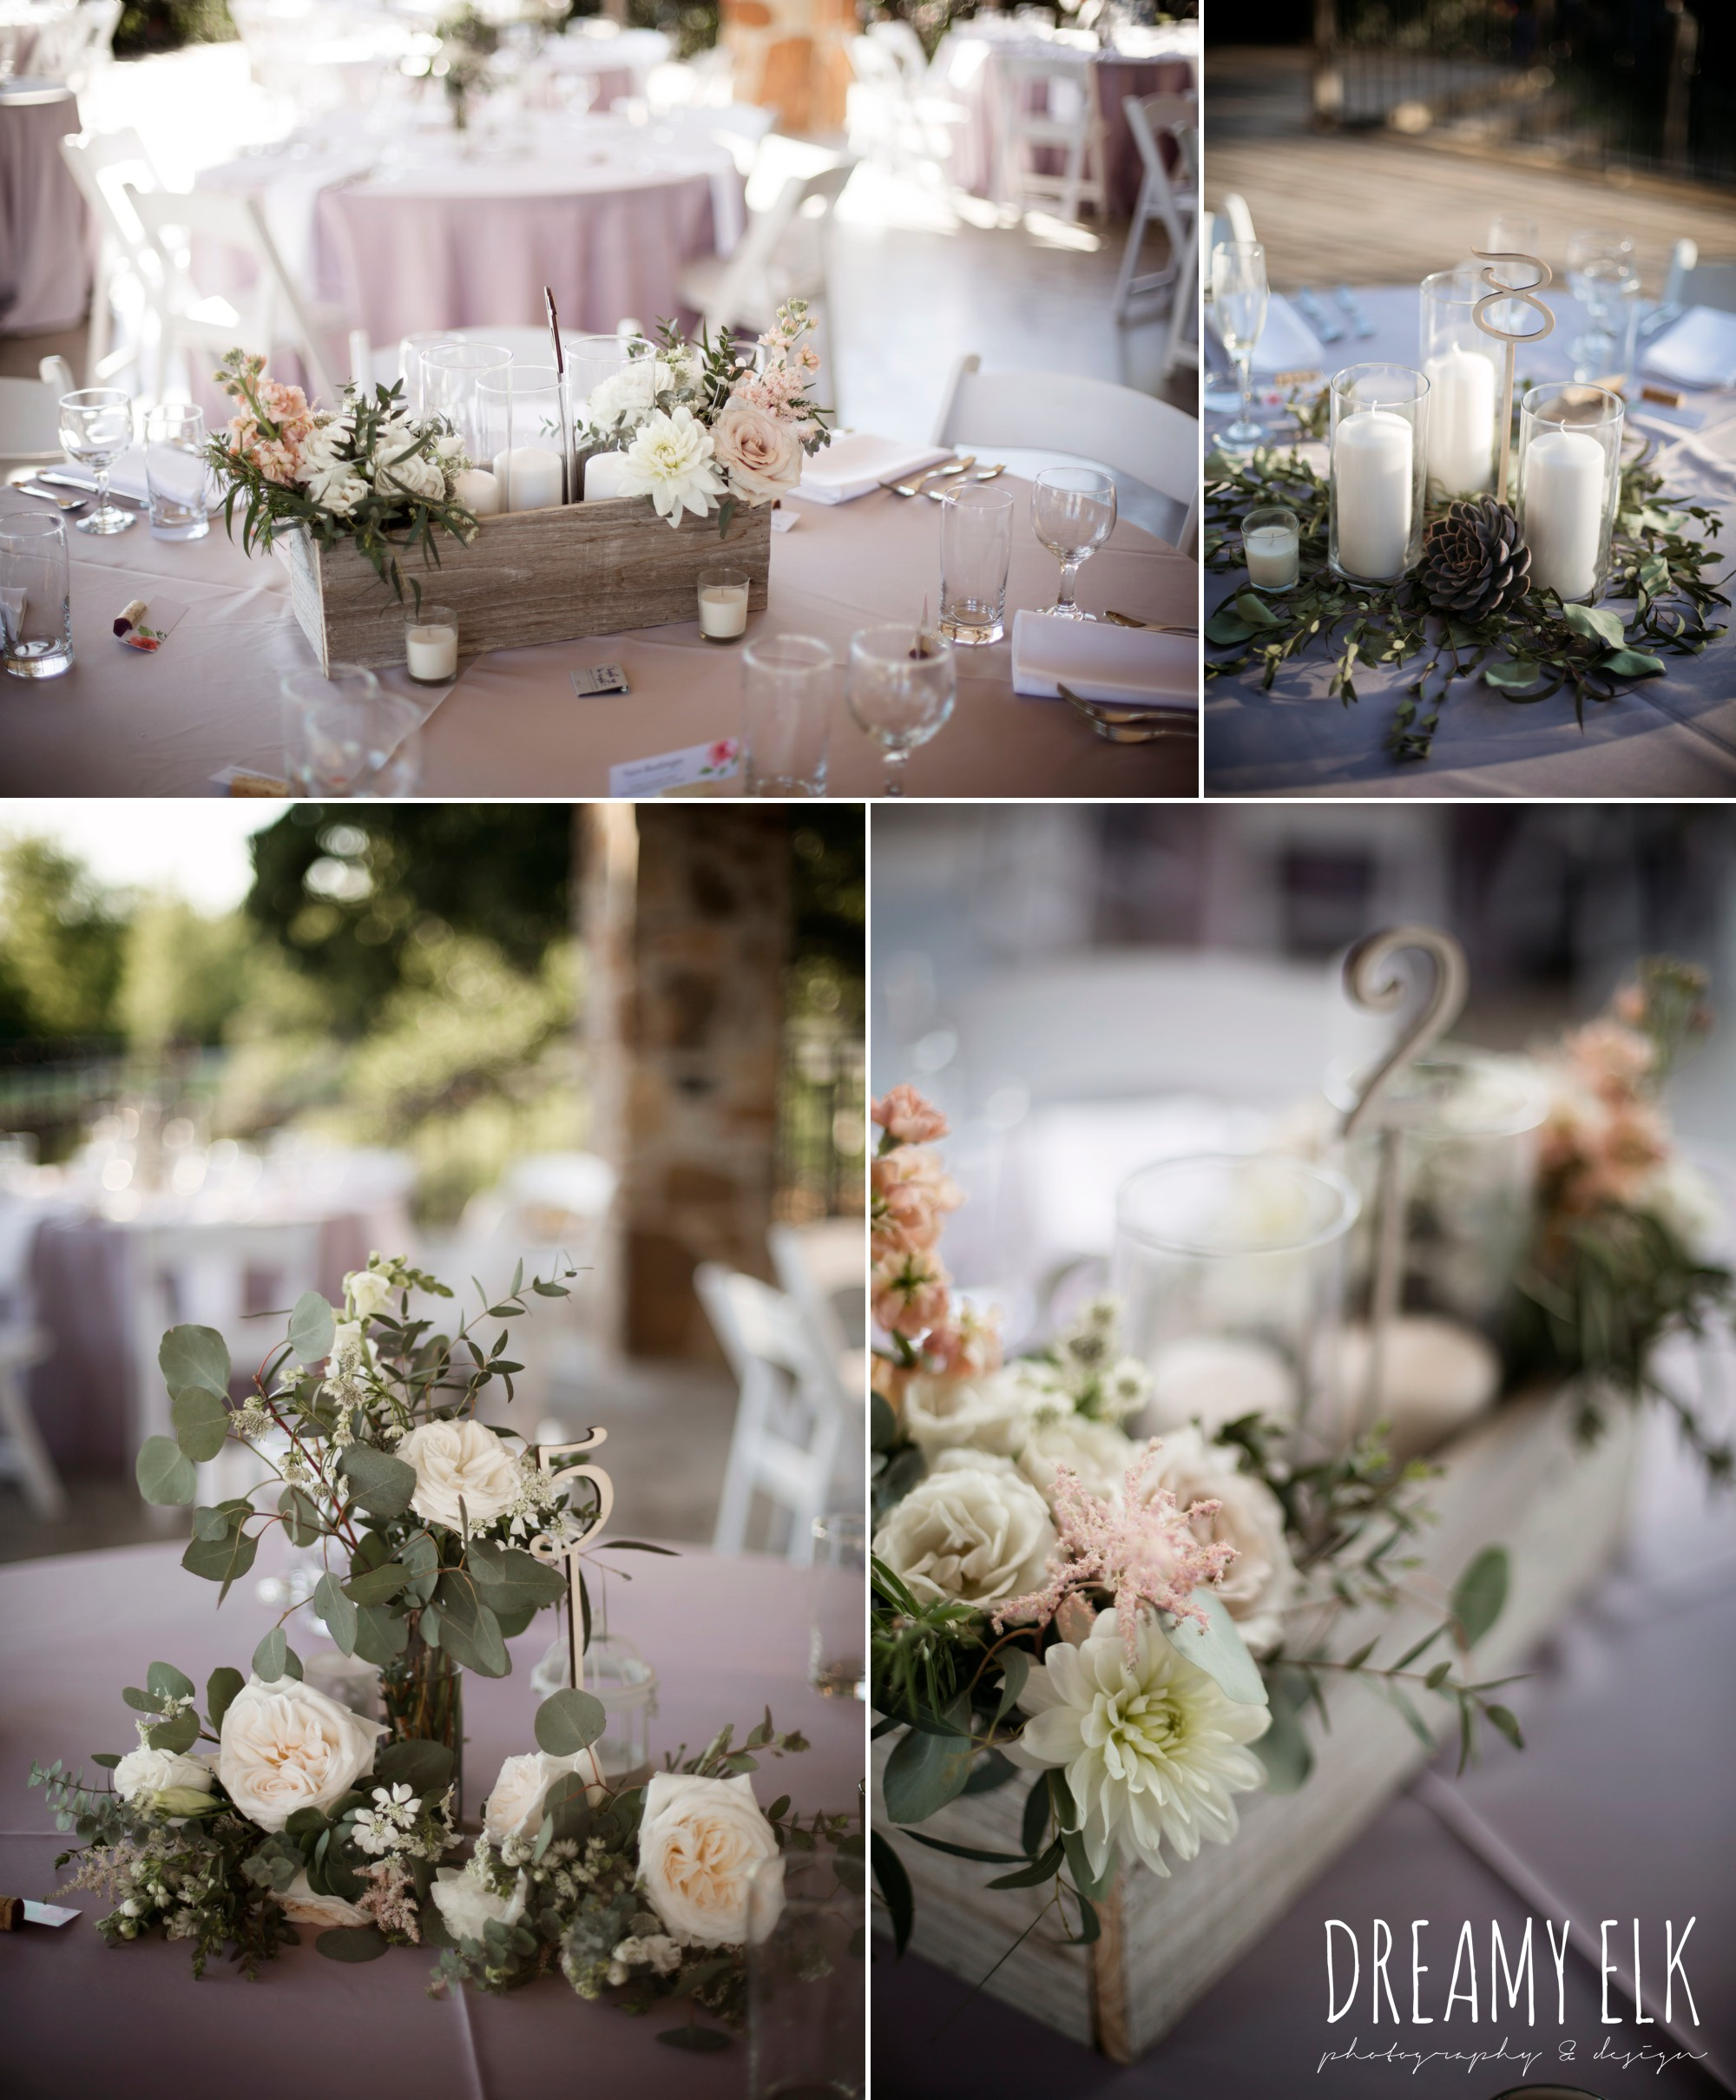 unforgettable floral, white and green succulent wedding reception table centerpieces, details party rentals, outdoor april spring wedding photo, double creek crossing, college station, texas, austin wedding photographer {dreamy elk photography and design}